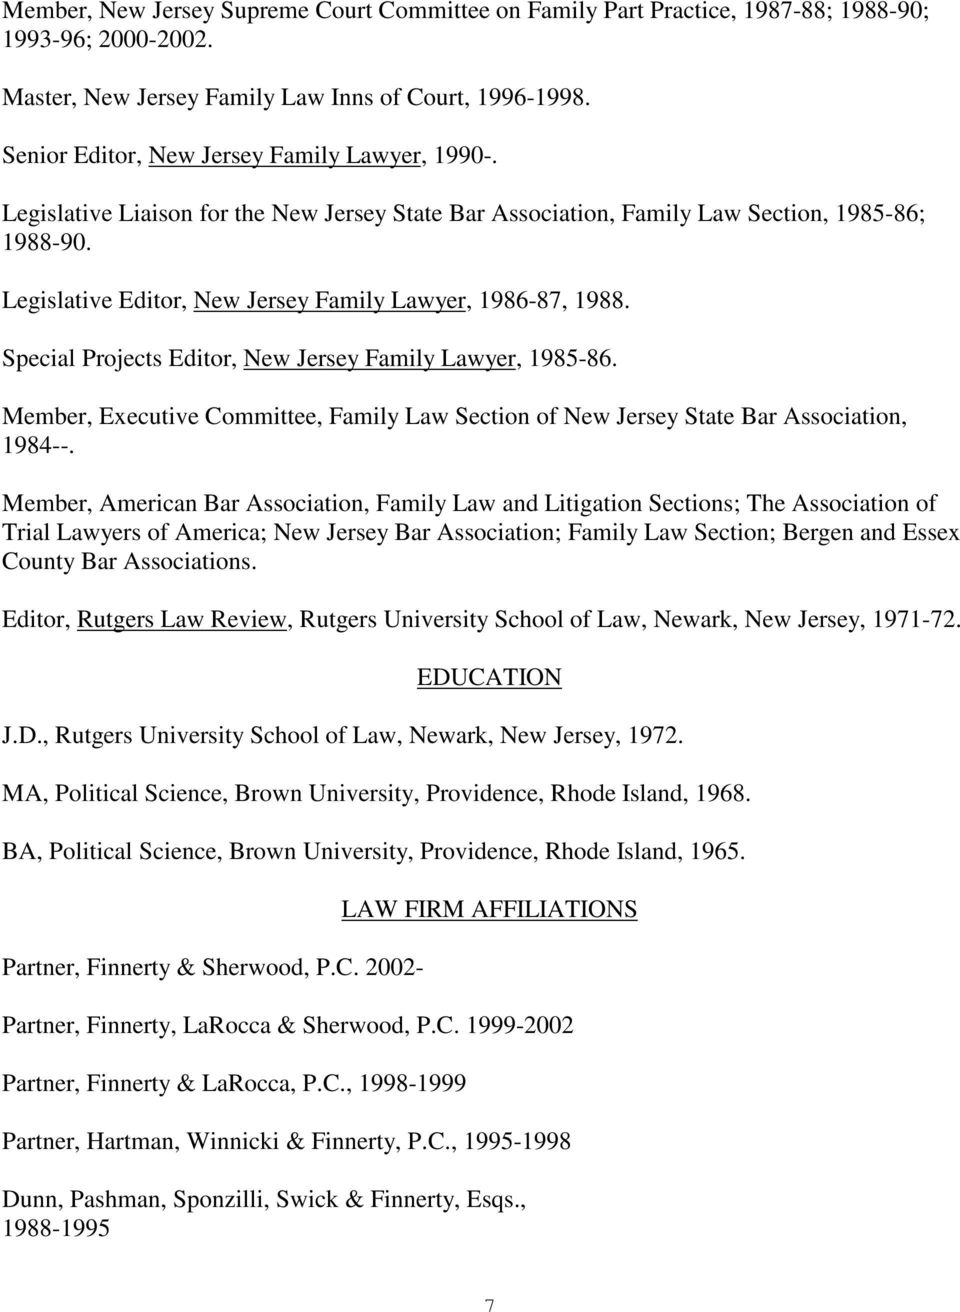 Legislative Editor, New Jersey Family Lawyer, 1986-87, 1988. Special Projects Editor, New Jersey Family Lawyer, 1985-86.